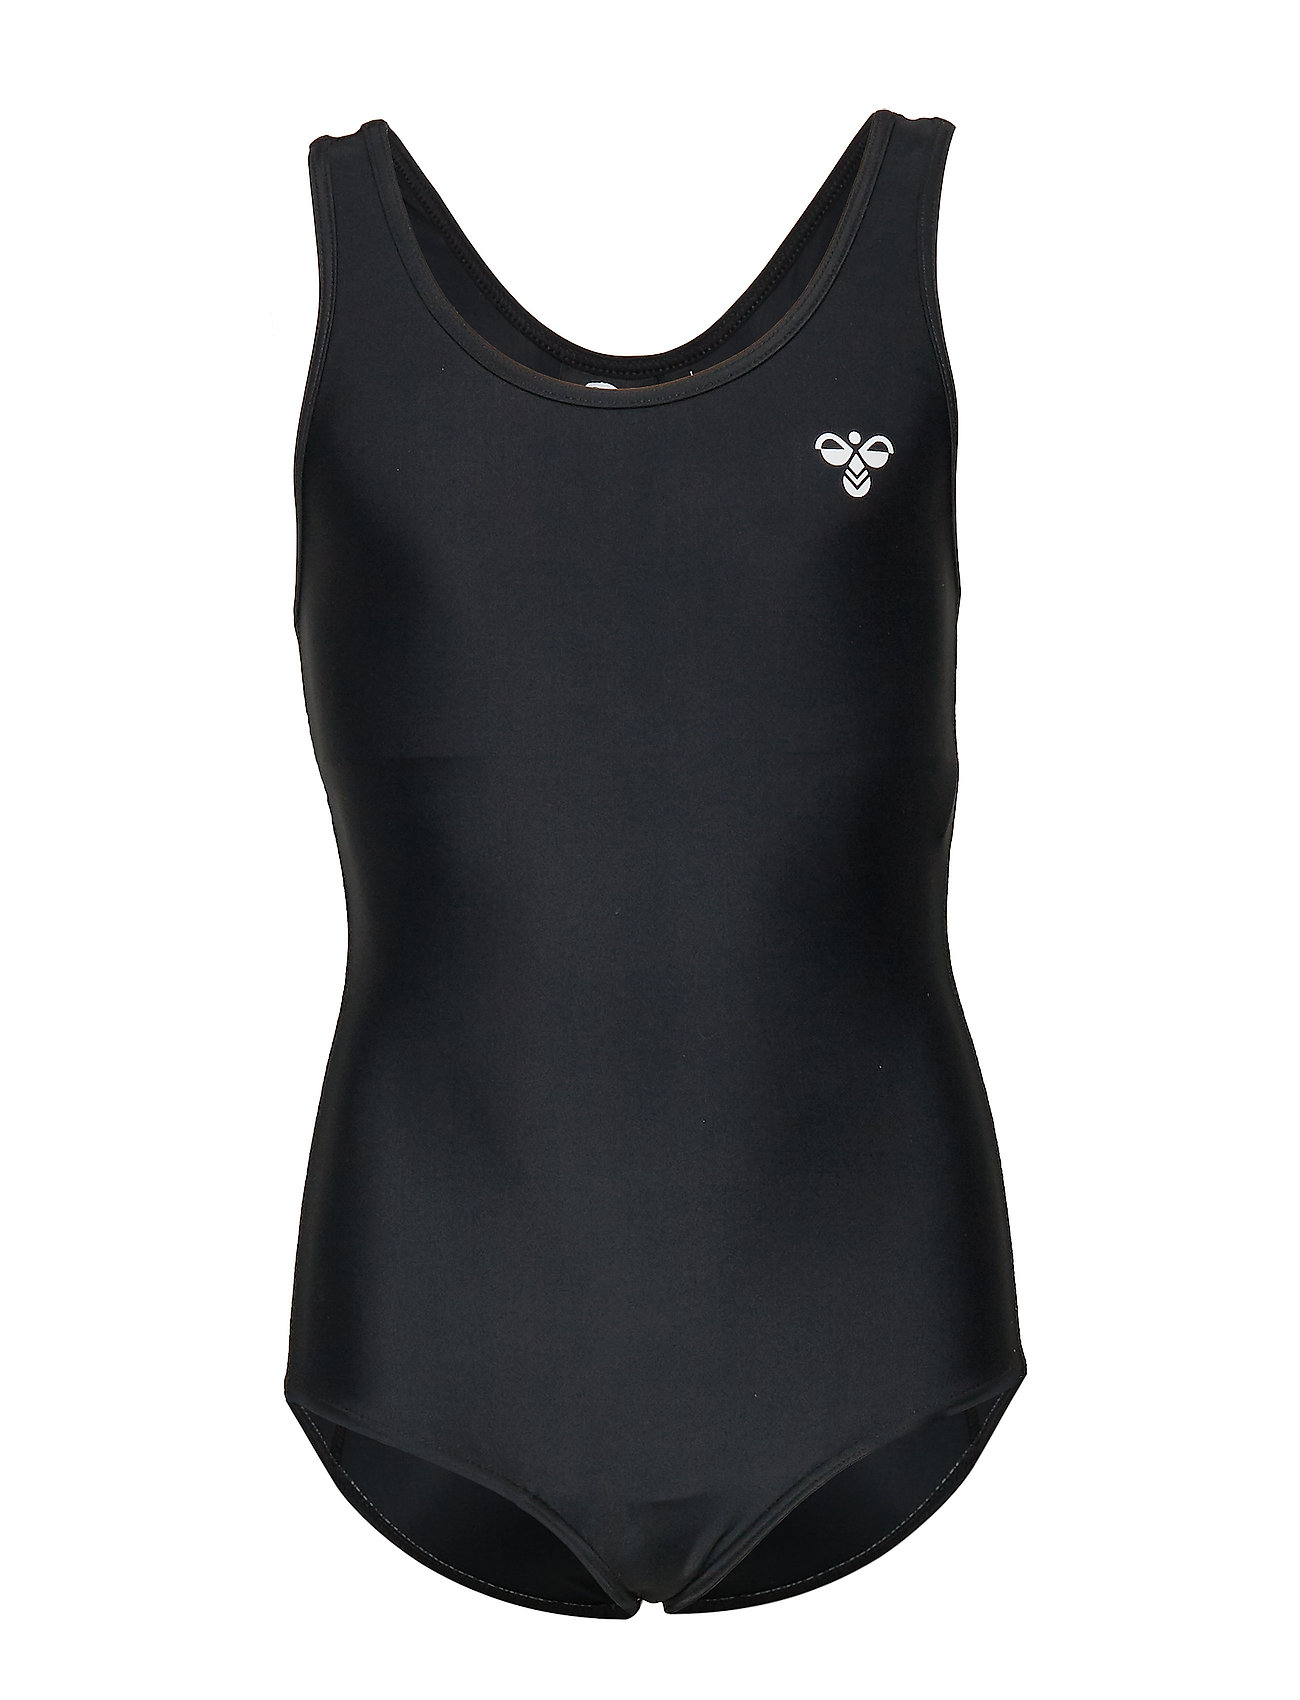 Hummel hmlNIKOLINE SWIMSUIT - BLACK